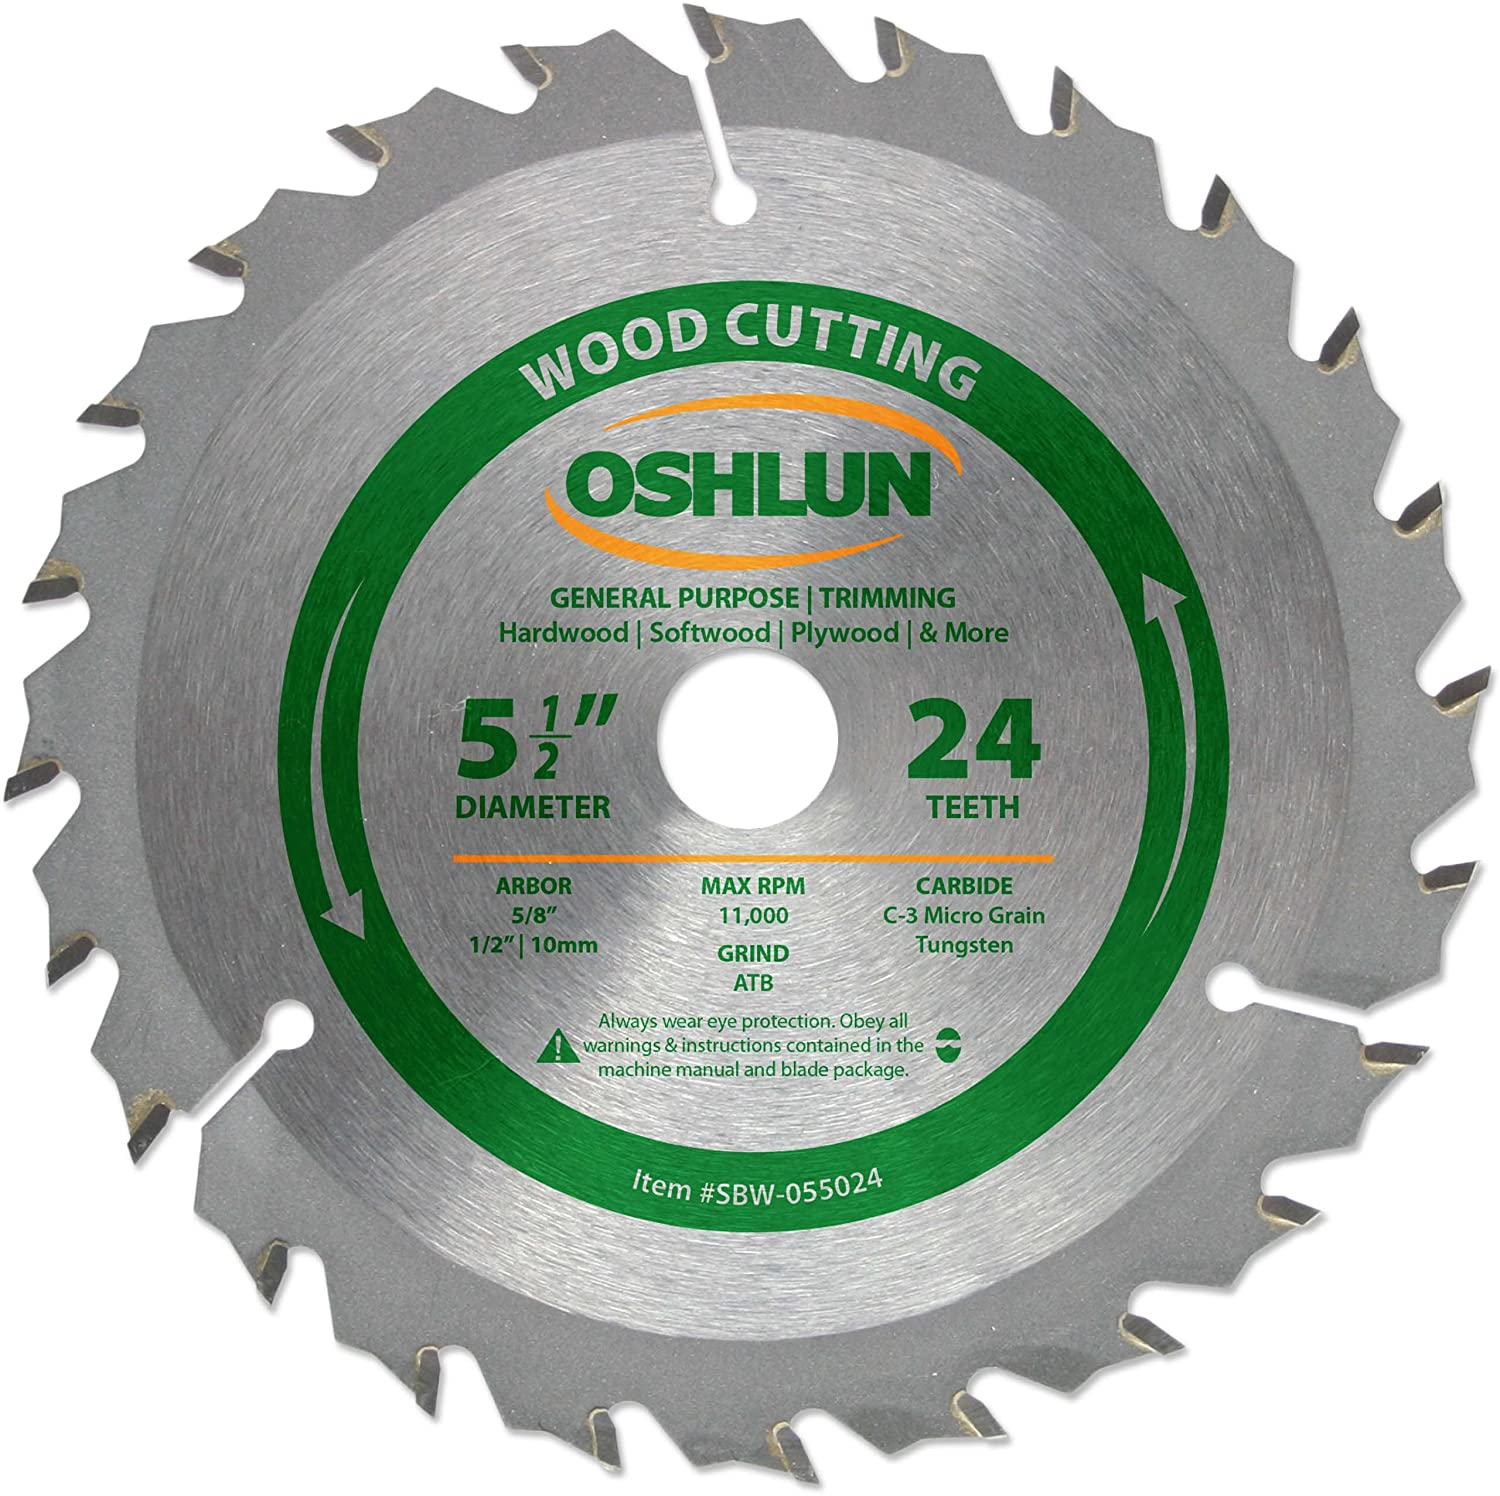 Oshlun sbw 055024 5 12 inch 24 tooth atb general purpose and oshlun sbw 055024 5 12 inch 24 tooth atb general purpose and trimming saw blade with 58 inch arbor 12 inch and 10mm bushings circular saw blades greentooth Image collections